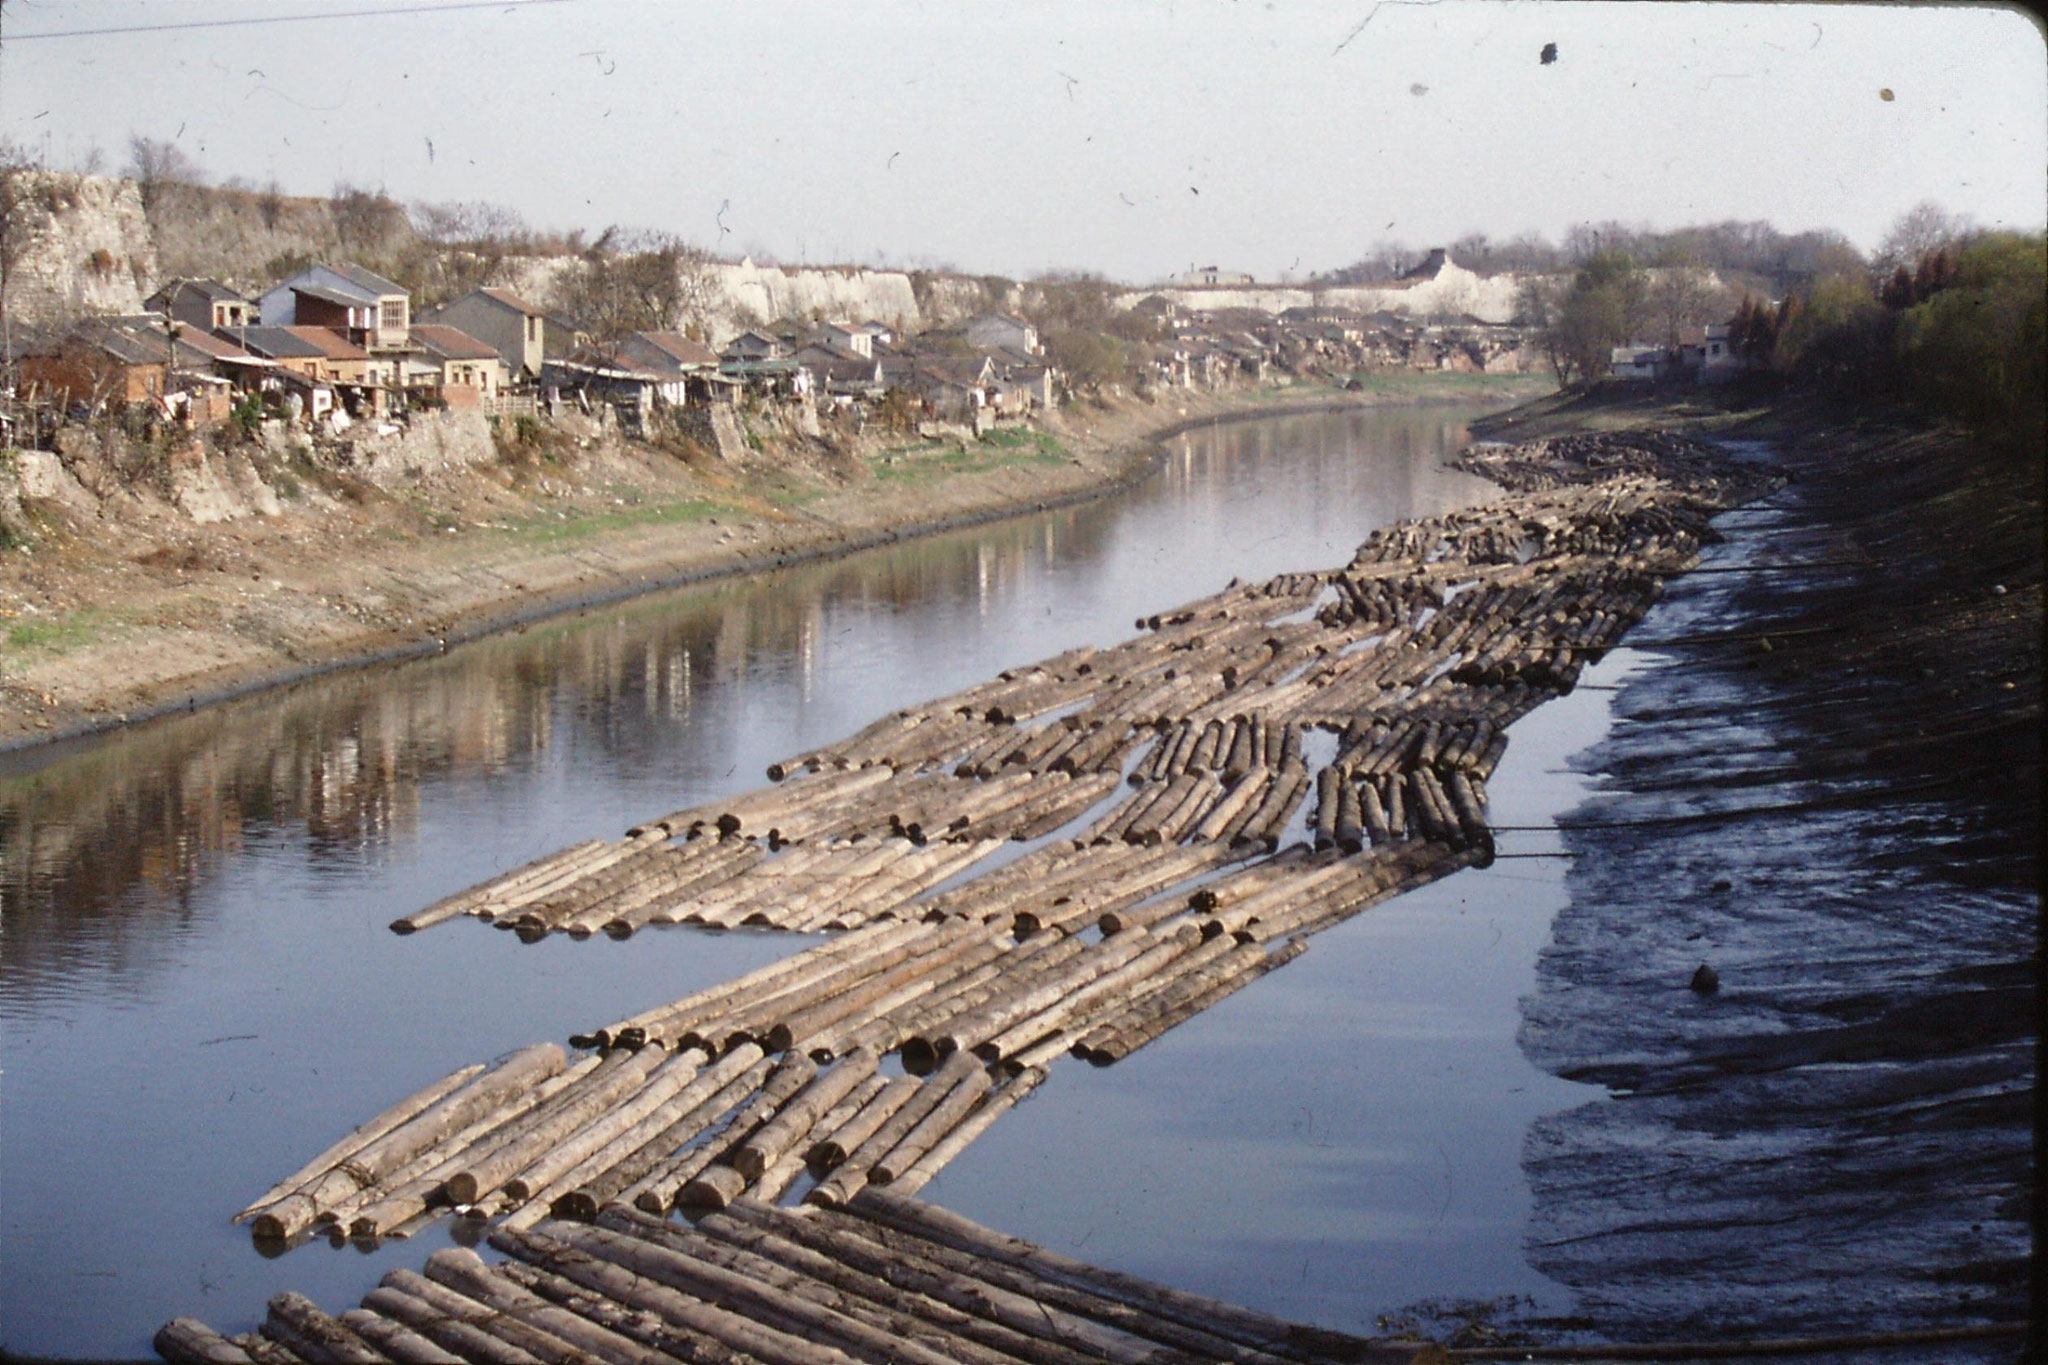 11/12/1988: 29: Nanjing logs in canal and city wall